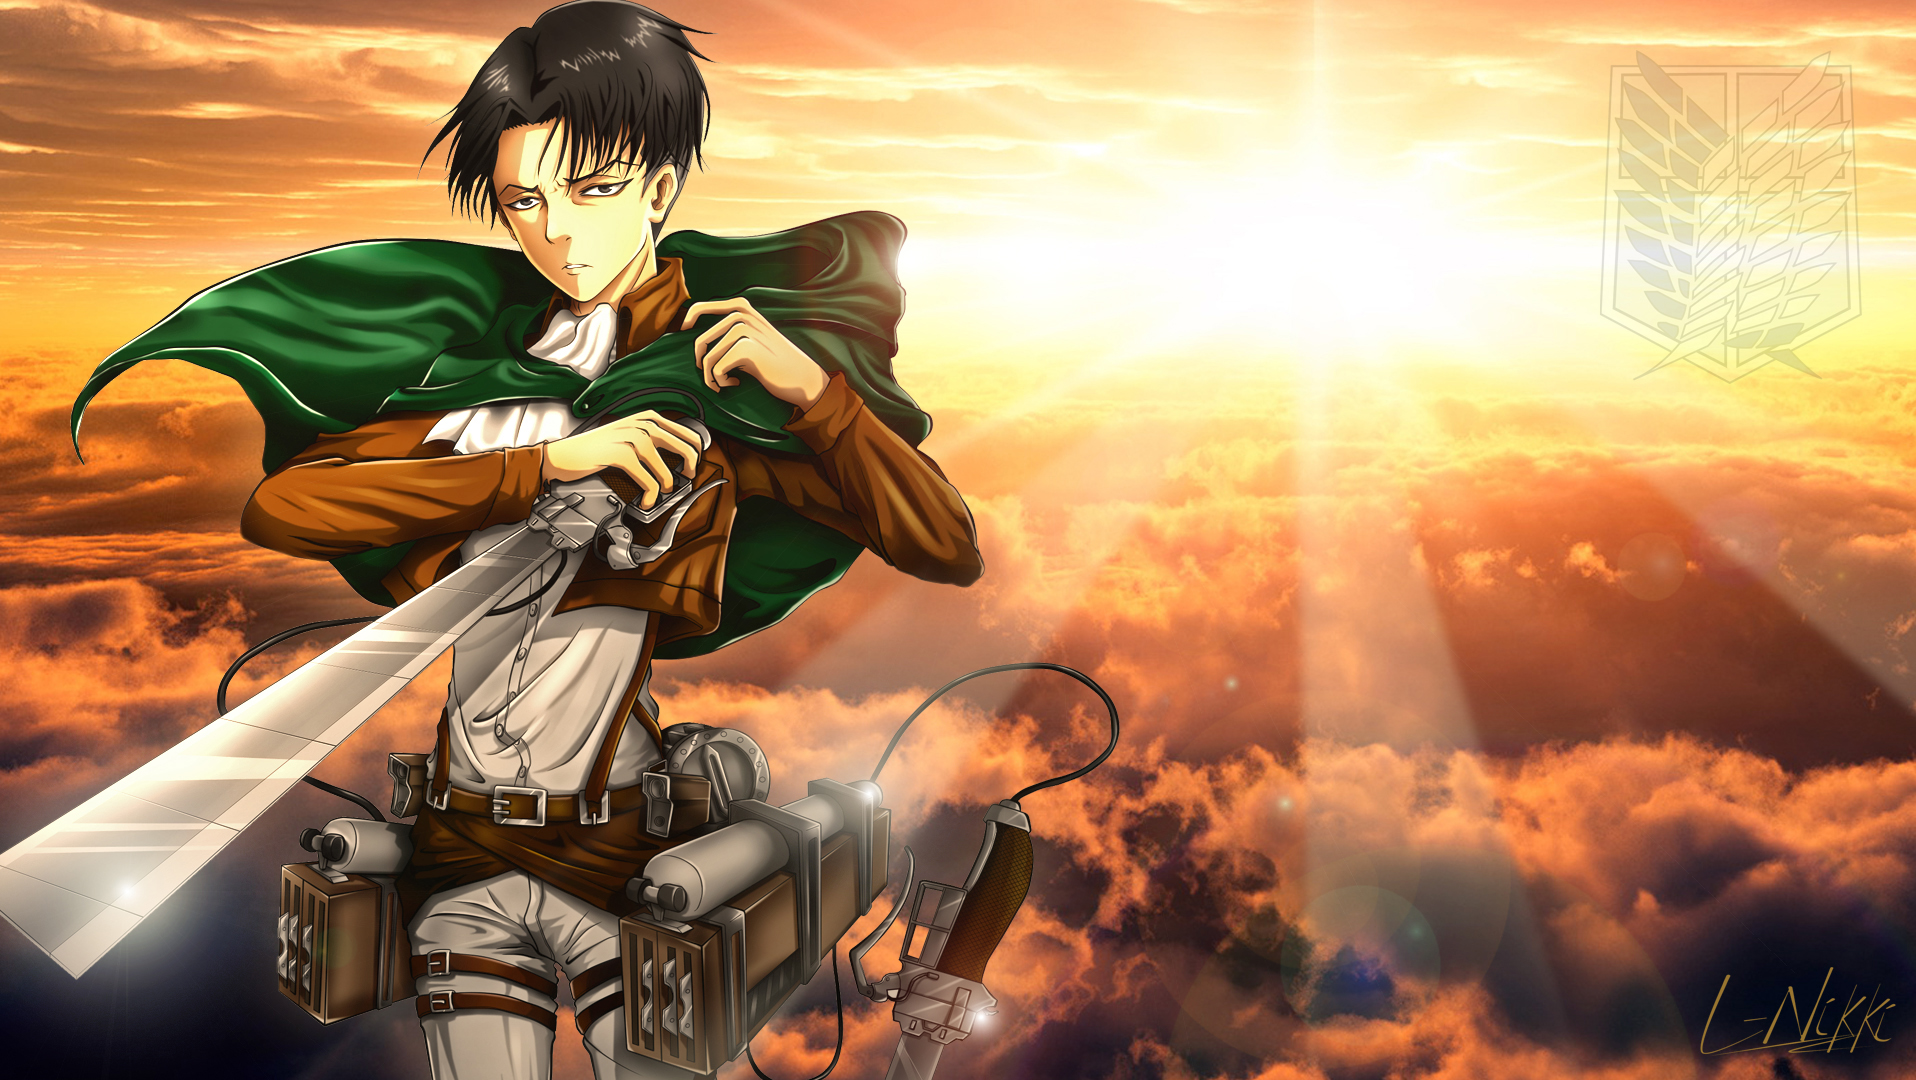 Levi HD Wallpapers